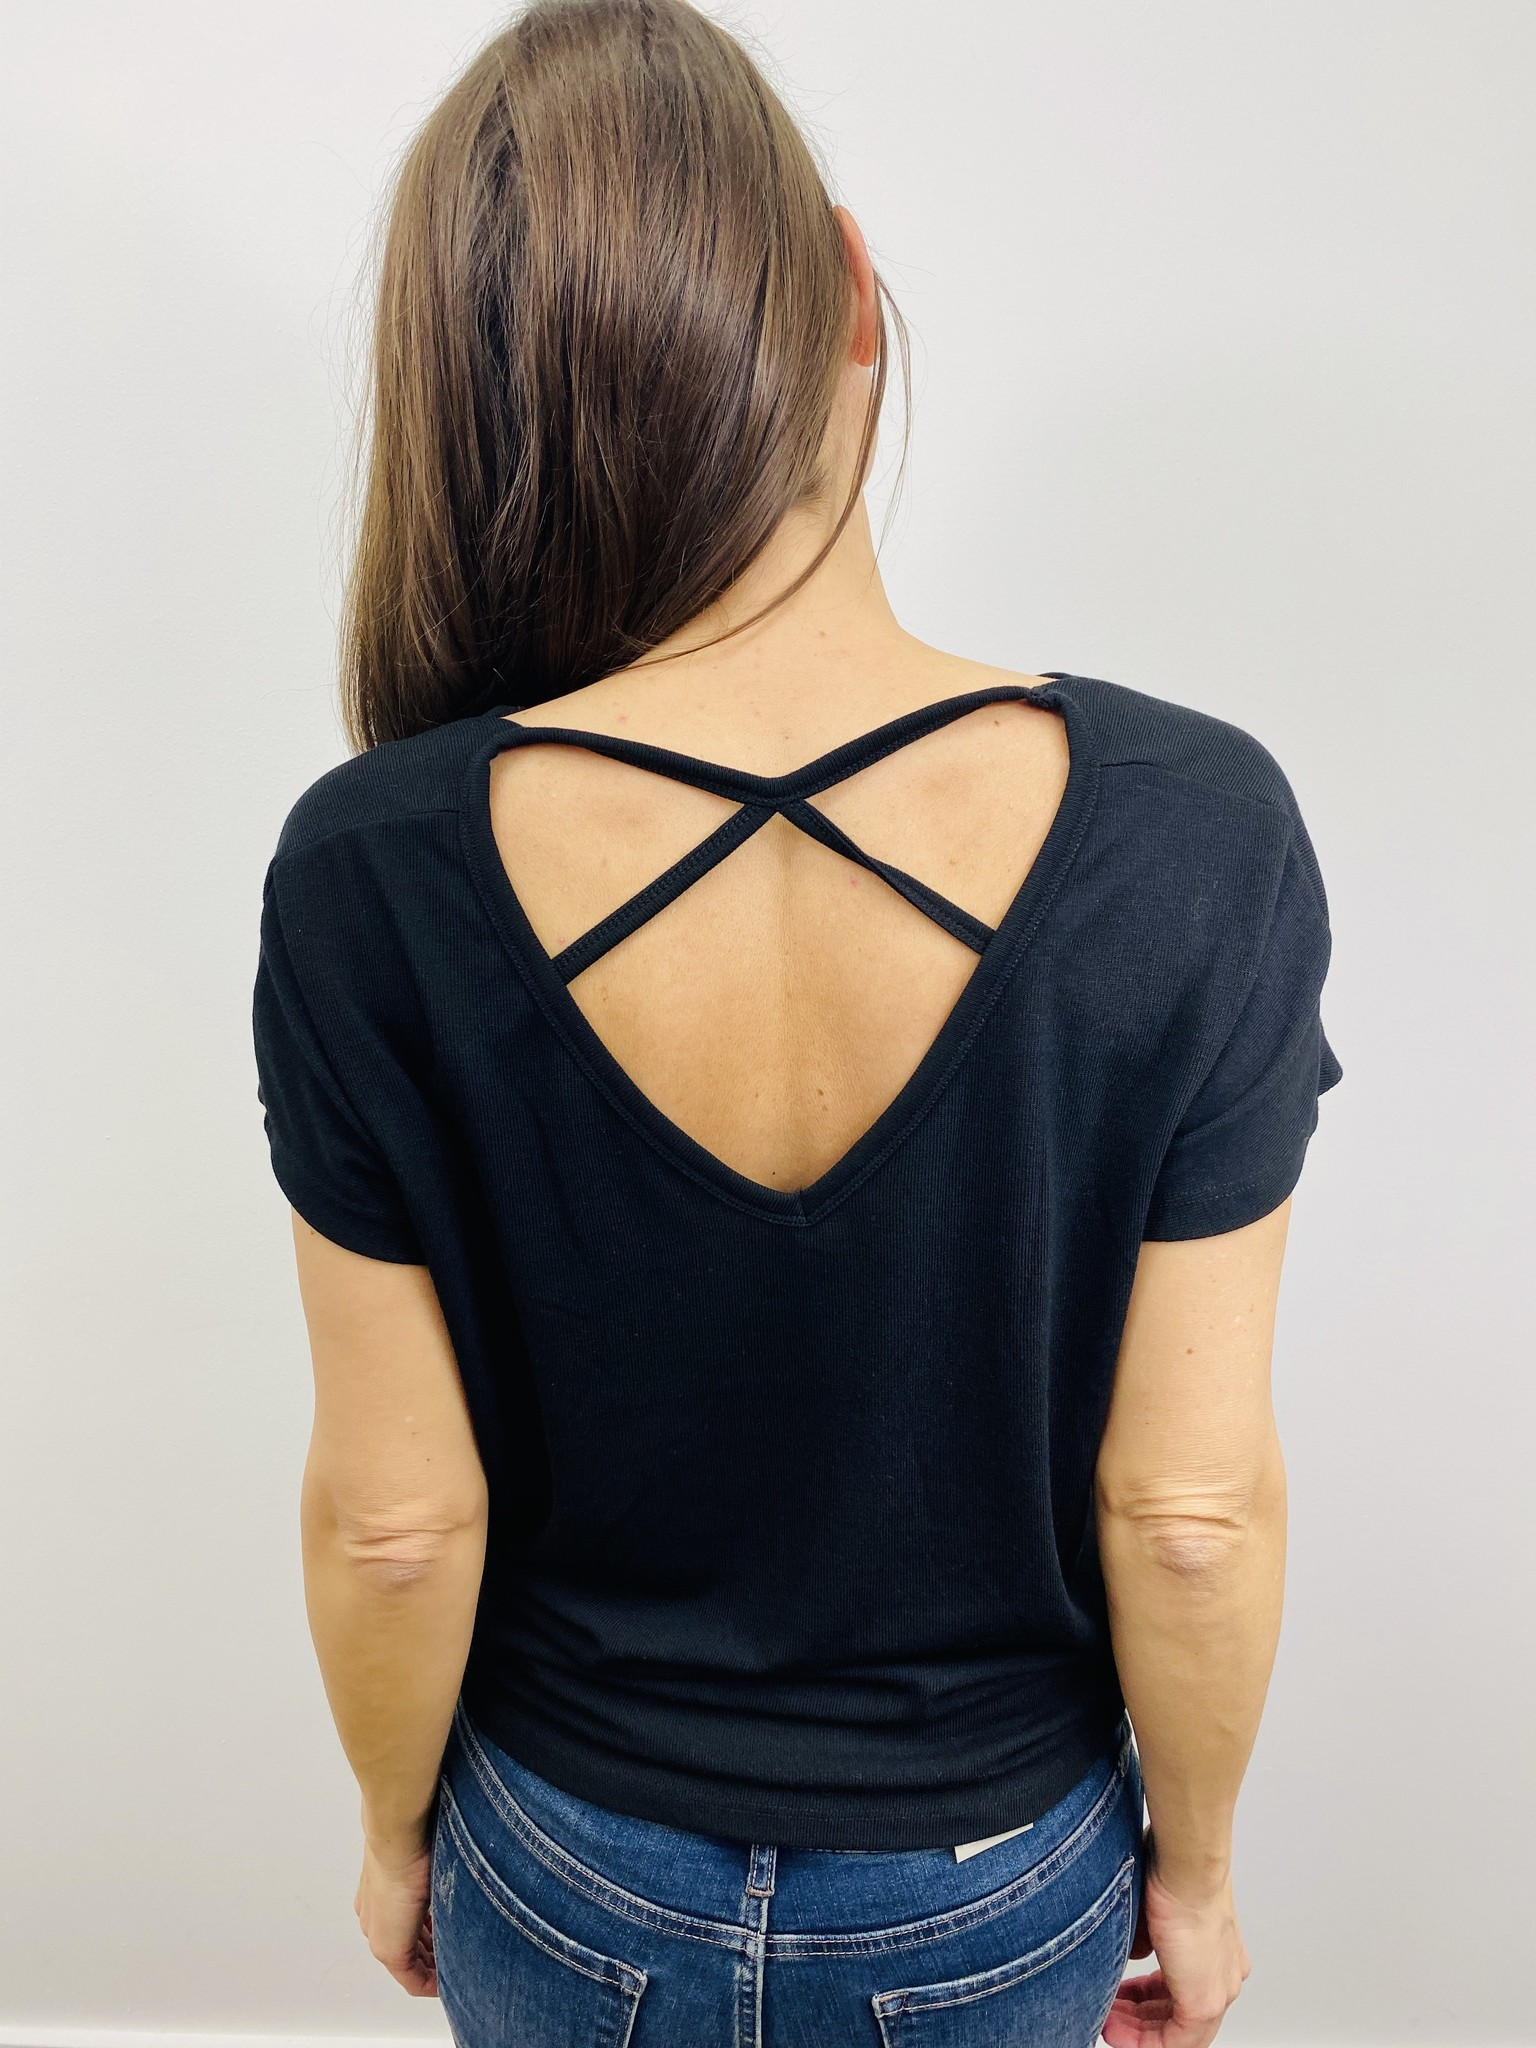 Neesha Cowl Back Top With Strap Detail in Black